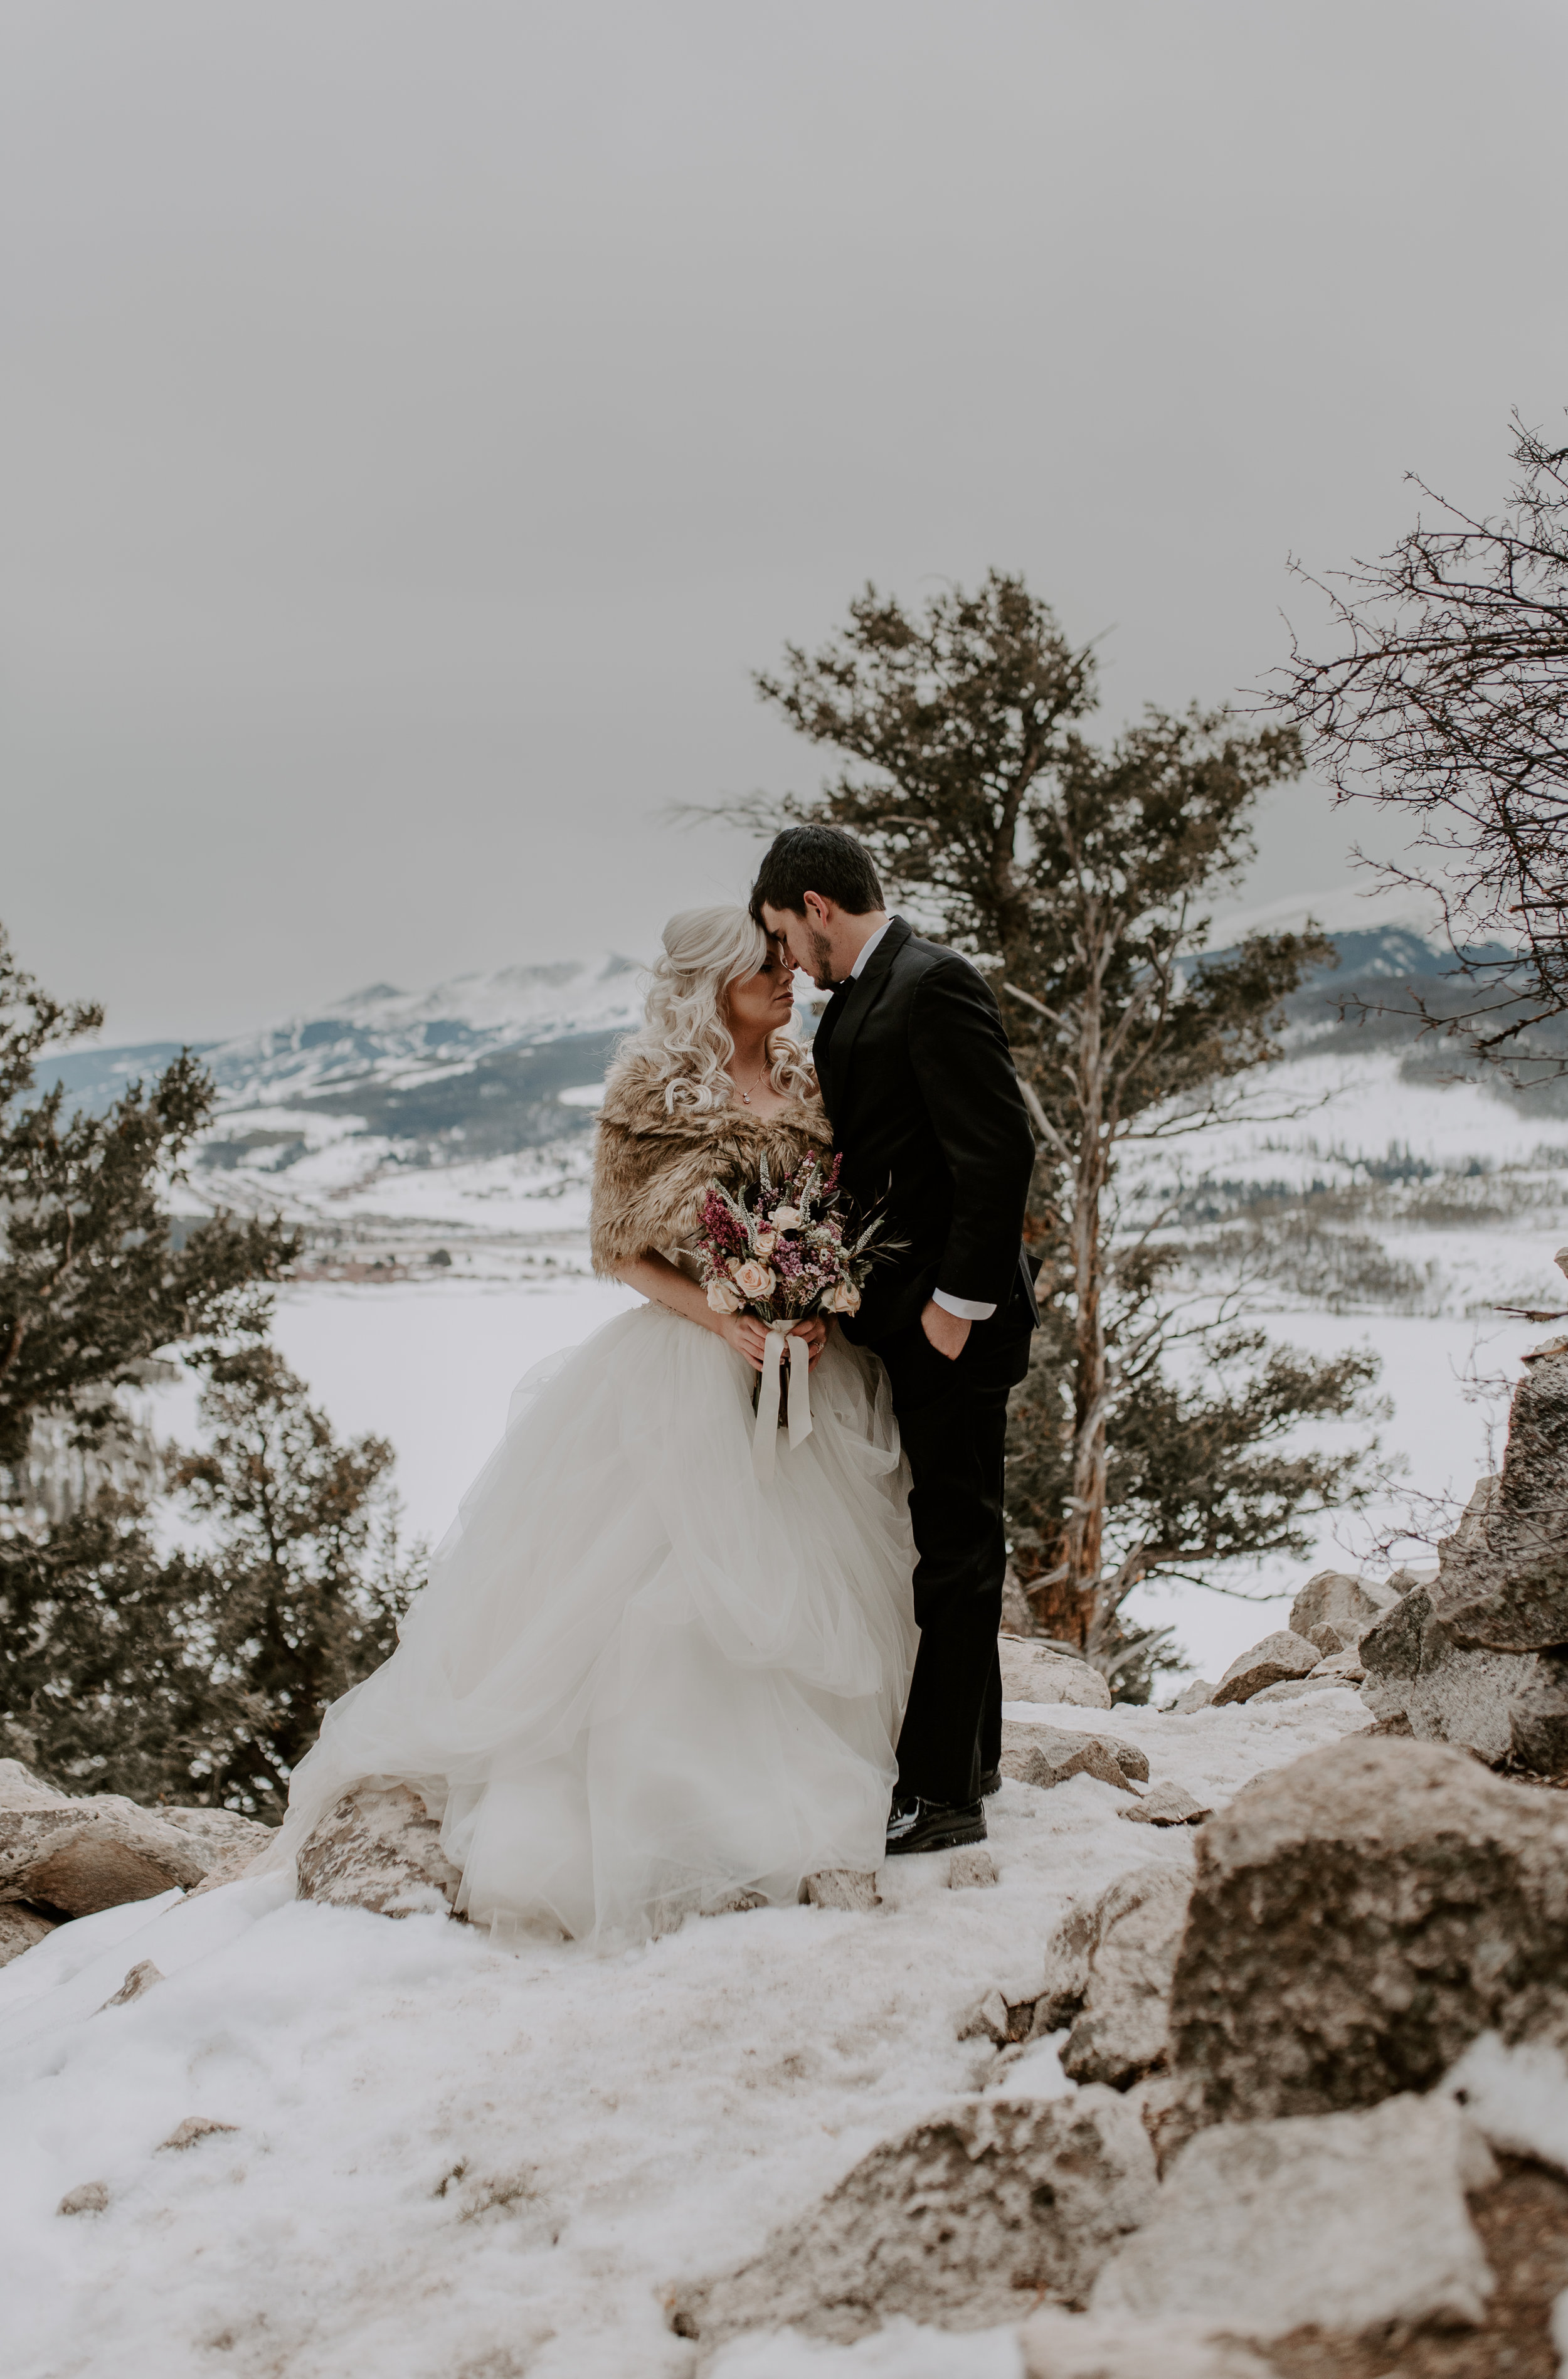 Self solemnization ceremony at a Sapphire Point elopement.